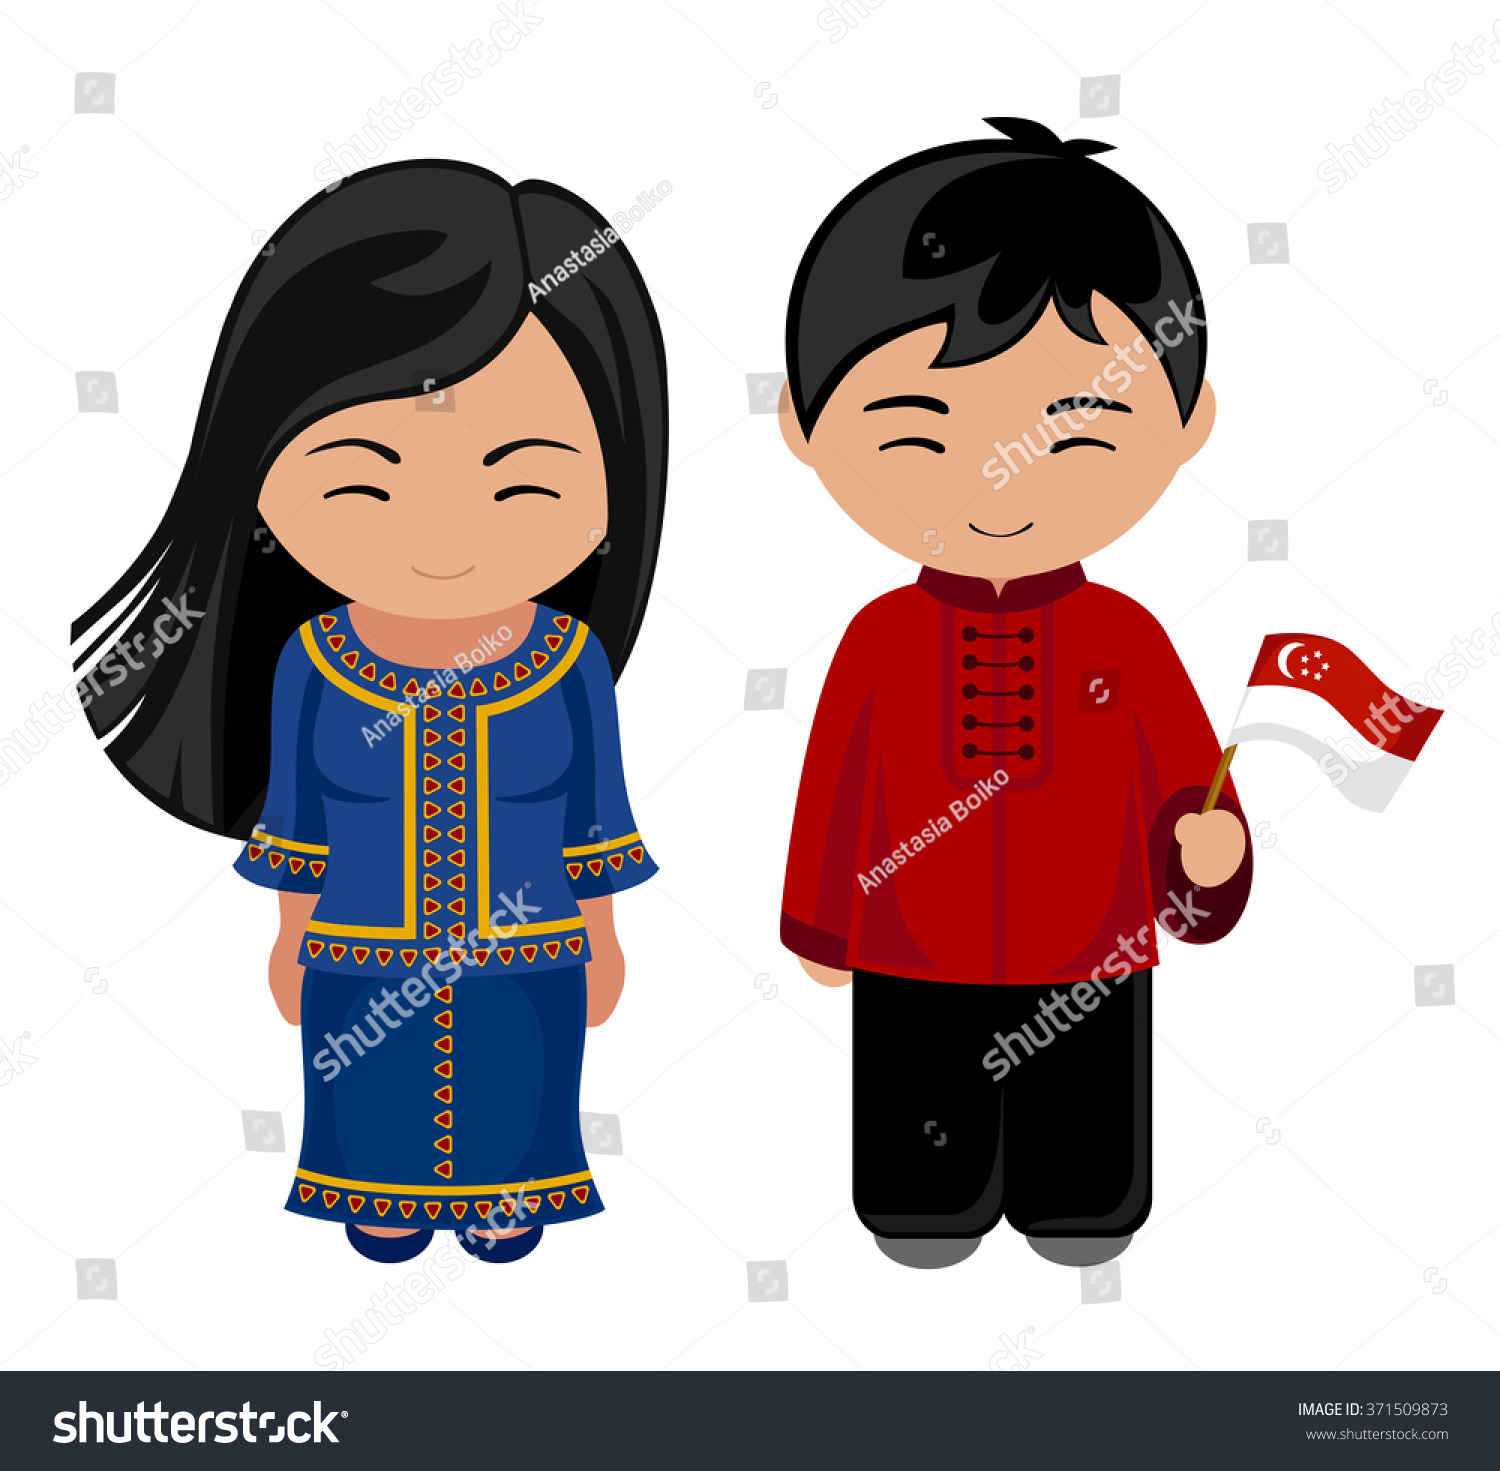 Welcome World League Of Beauty And Fashion Official Web: Singaporeans National Dress Flag Man Woman Stock Vector